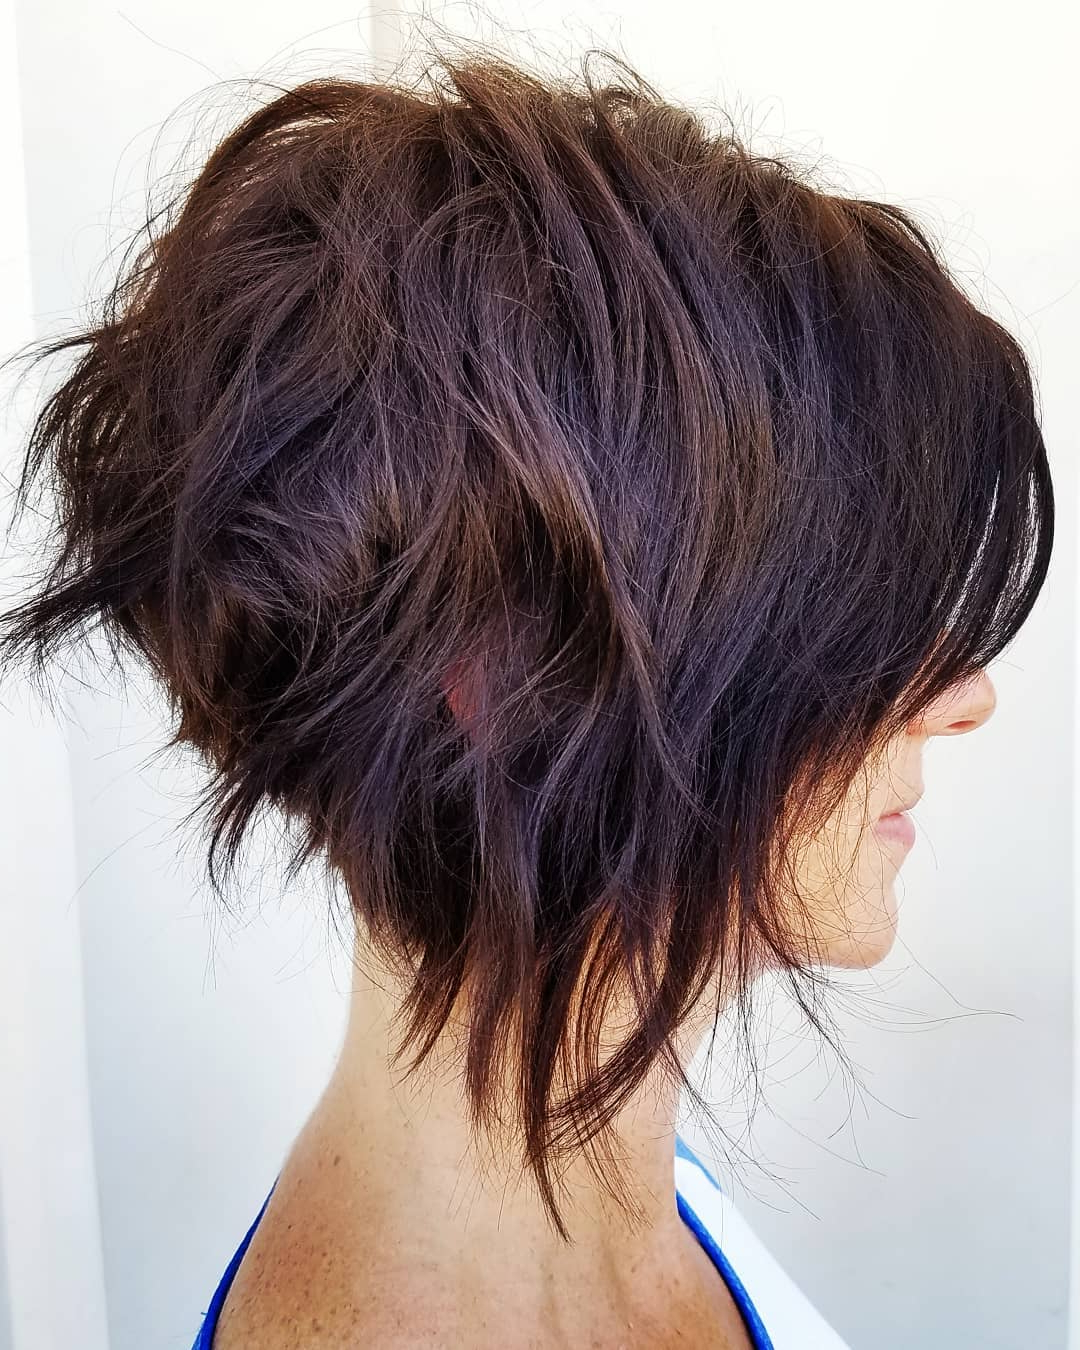 10 Trendy Messy Bob Hairstyles And Haircuts, 2019 Female Short Hair With Auburn Short Haircuts (View 8 of 25)